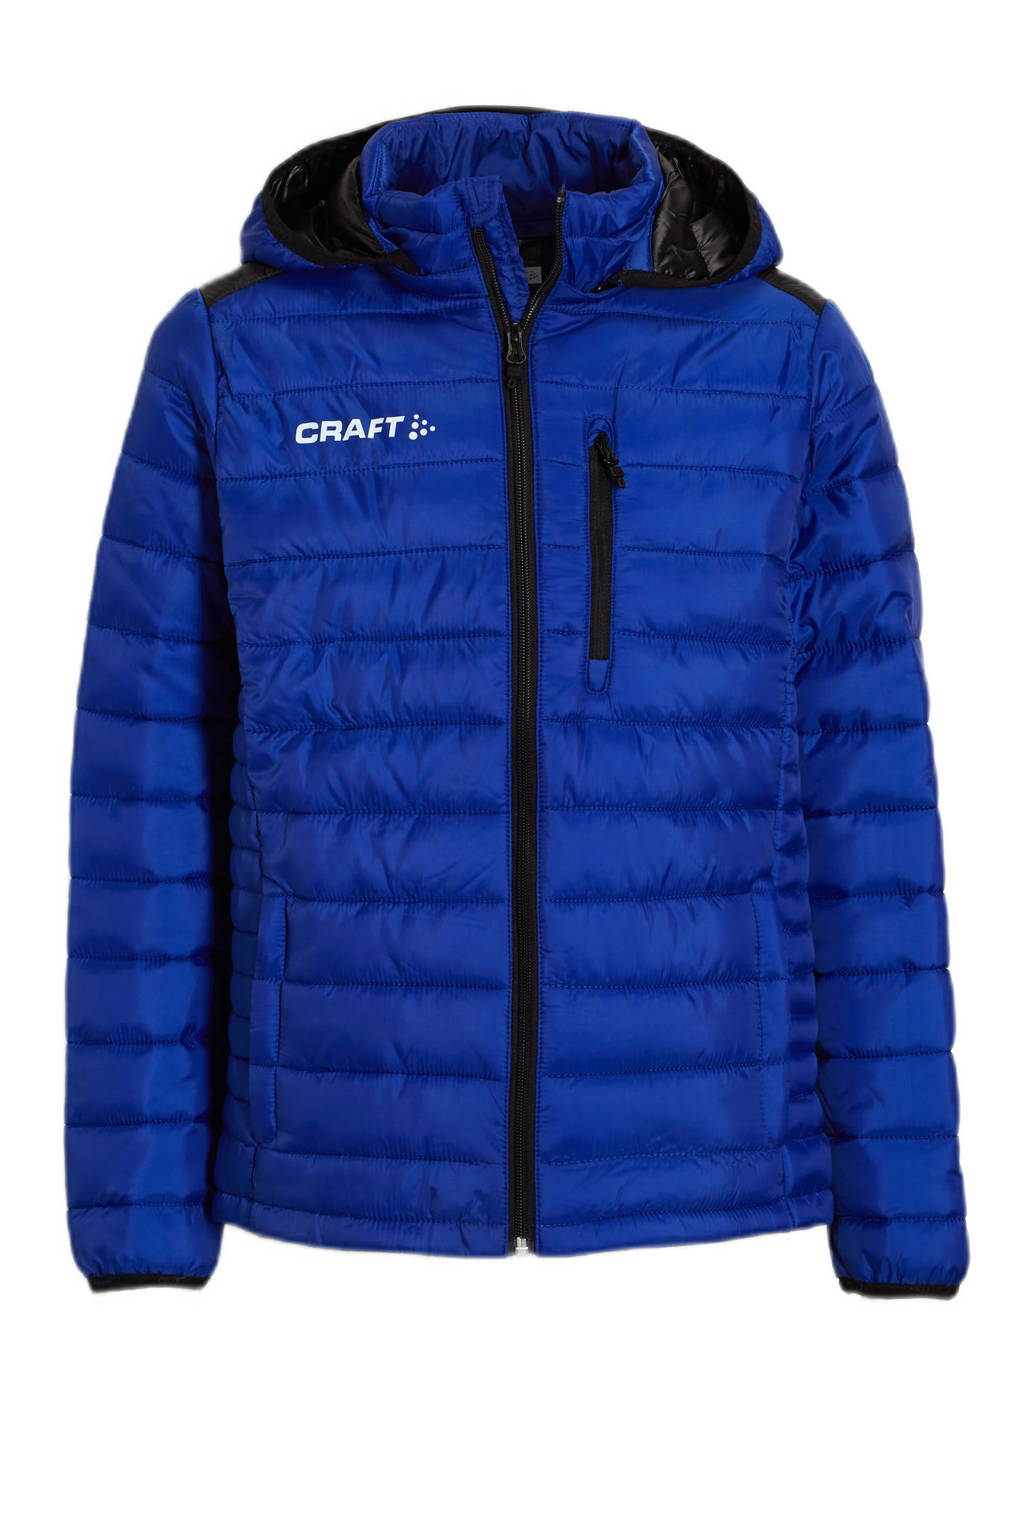 Craft Junior  sportjack, Blauw